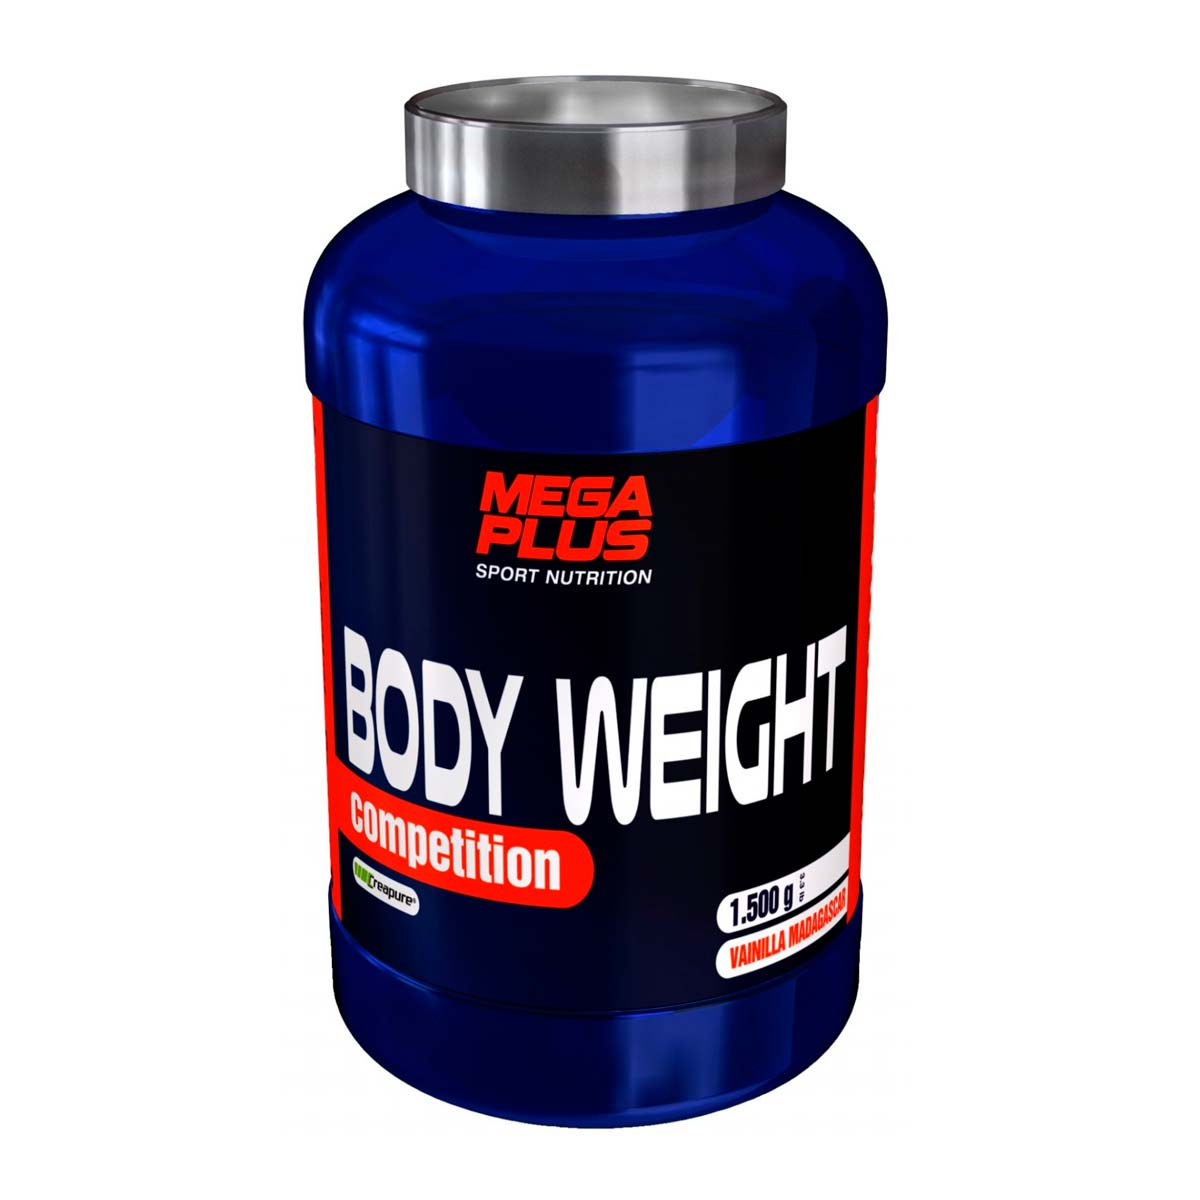 BODY WEIGHT COMPETITION 3 KG. MEGAPLUS